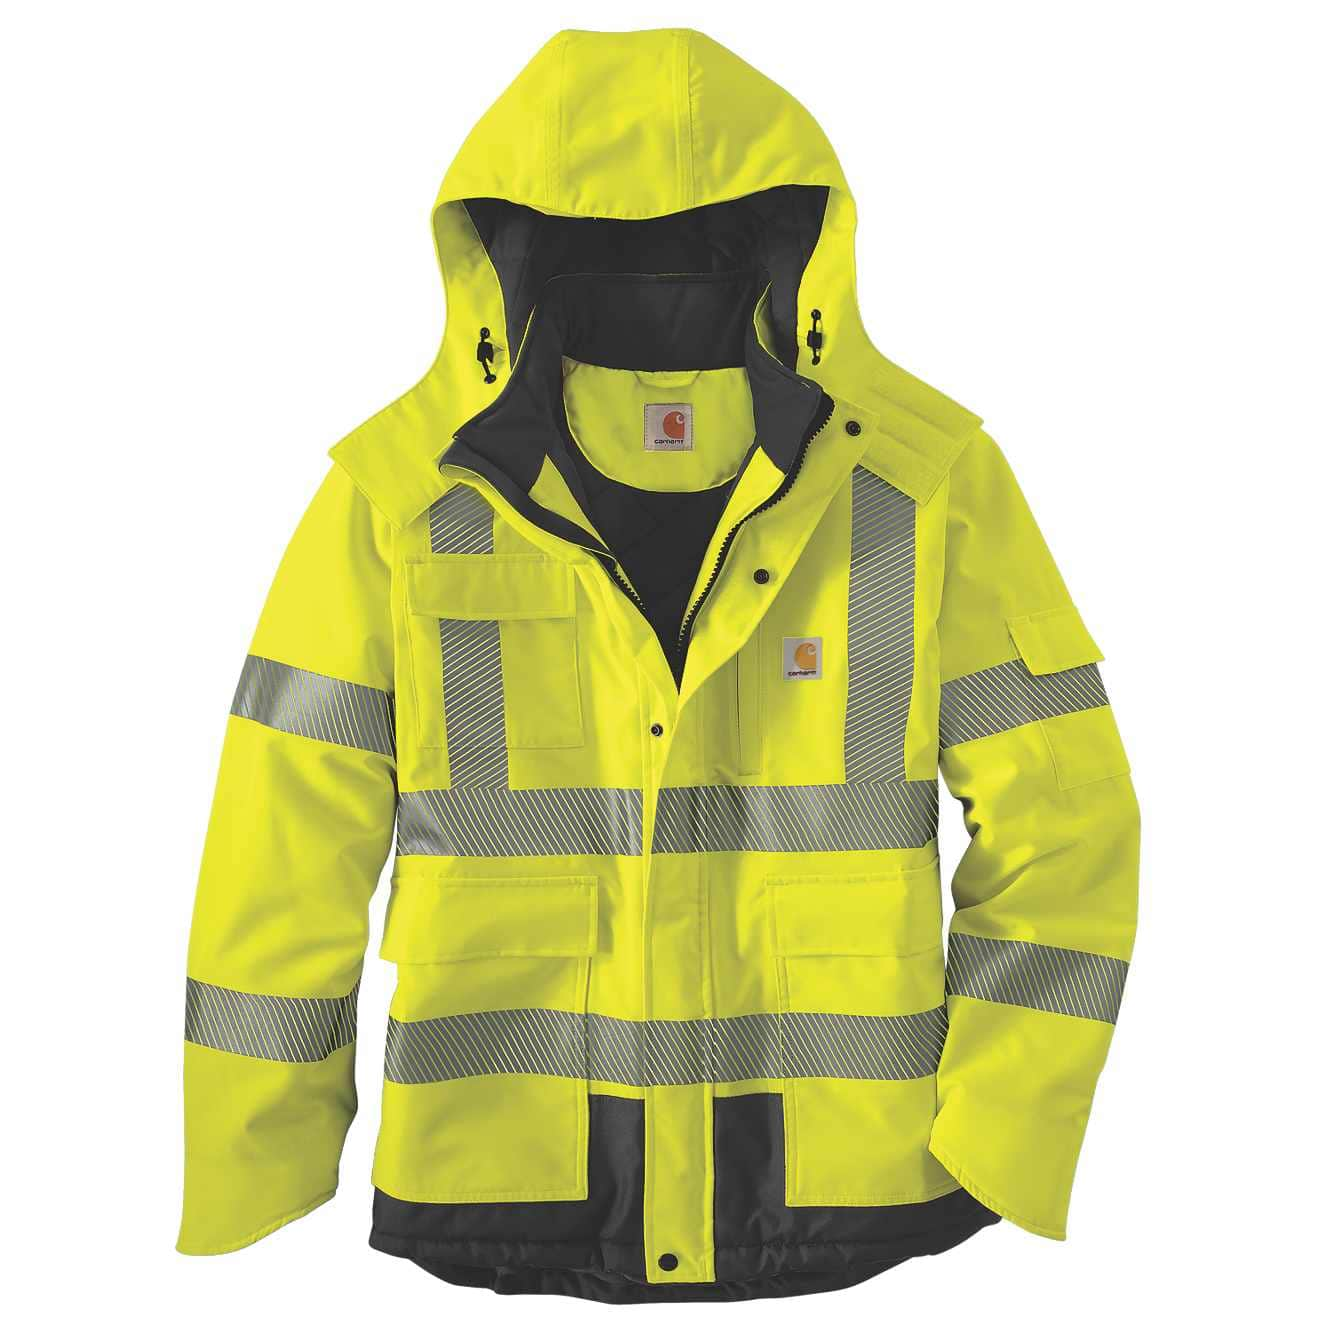 Picture of High-Visibility Class 3 Sherwood Jacket in Brite Lime